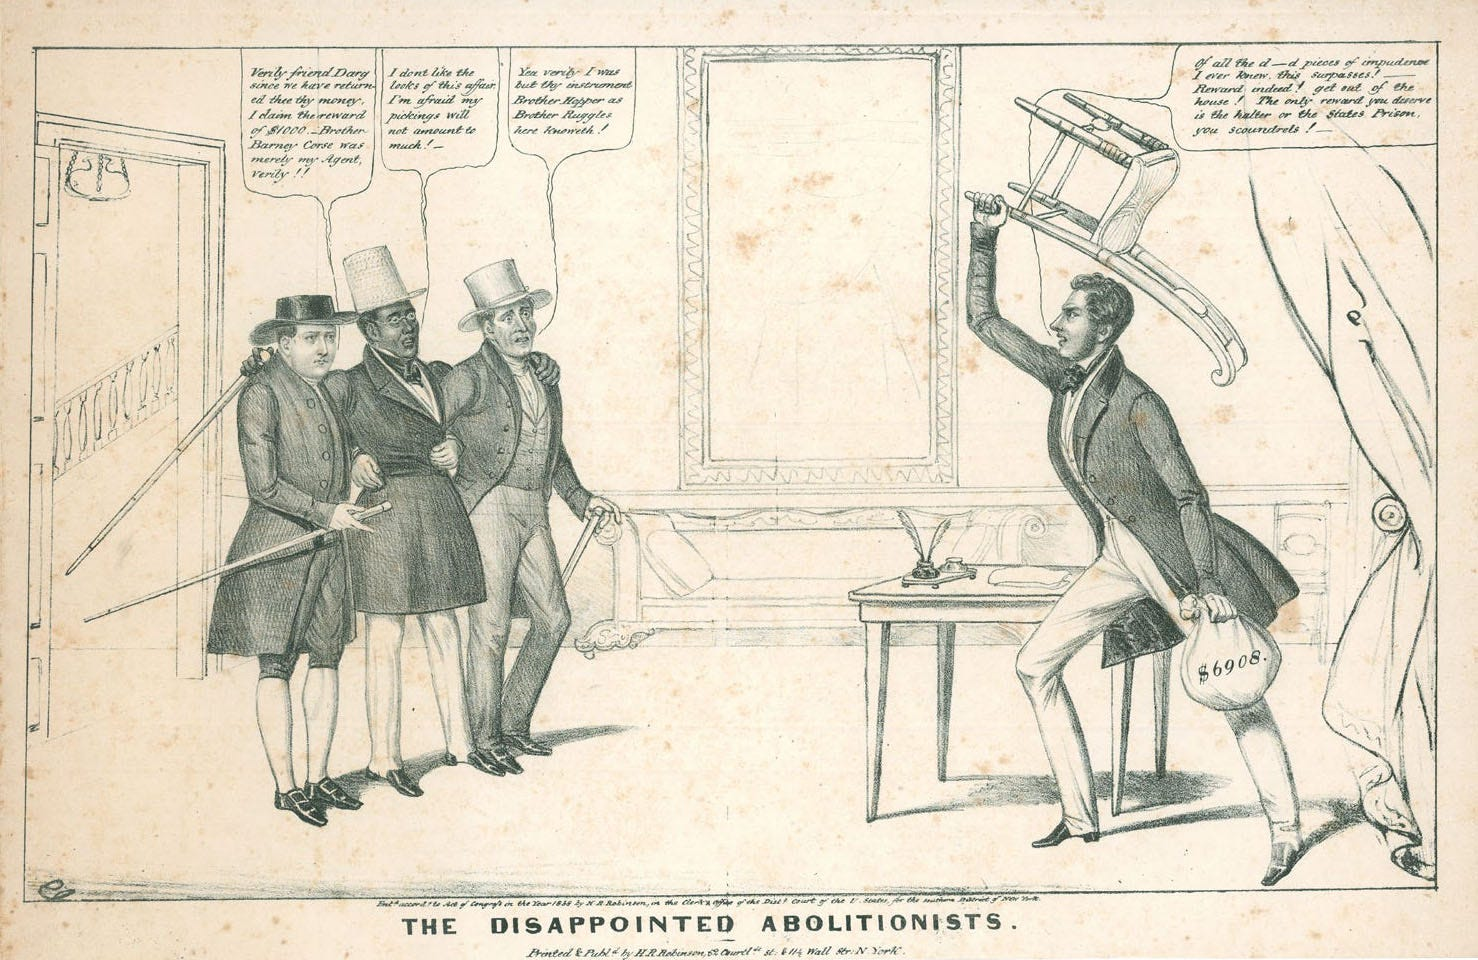 """David Ruggles is flanked by Isaac Hopper and Barney Corse in """"The Disappointed Abolitionists,"""" an 1838 illustration by Edward W. Clay. According to the owner, Richard West of Periodyssey, a used book store in Northampton, Mass., """"This is the first American cartoon to feature a recognizable Black personality, as opposed to a generic caricature."""""""